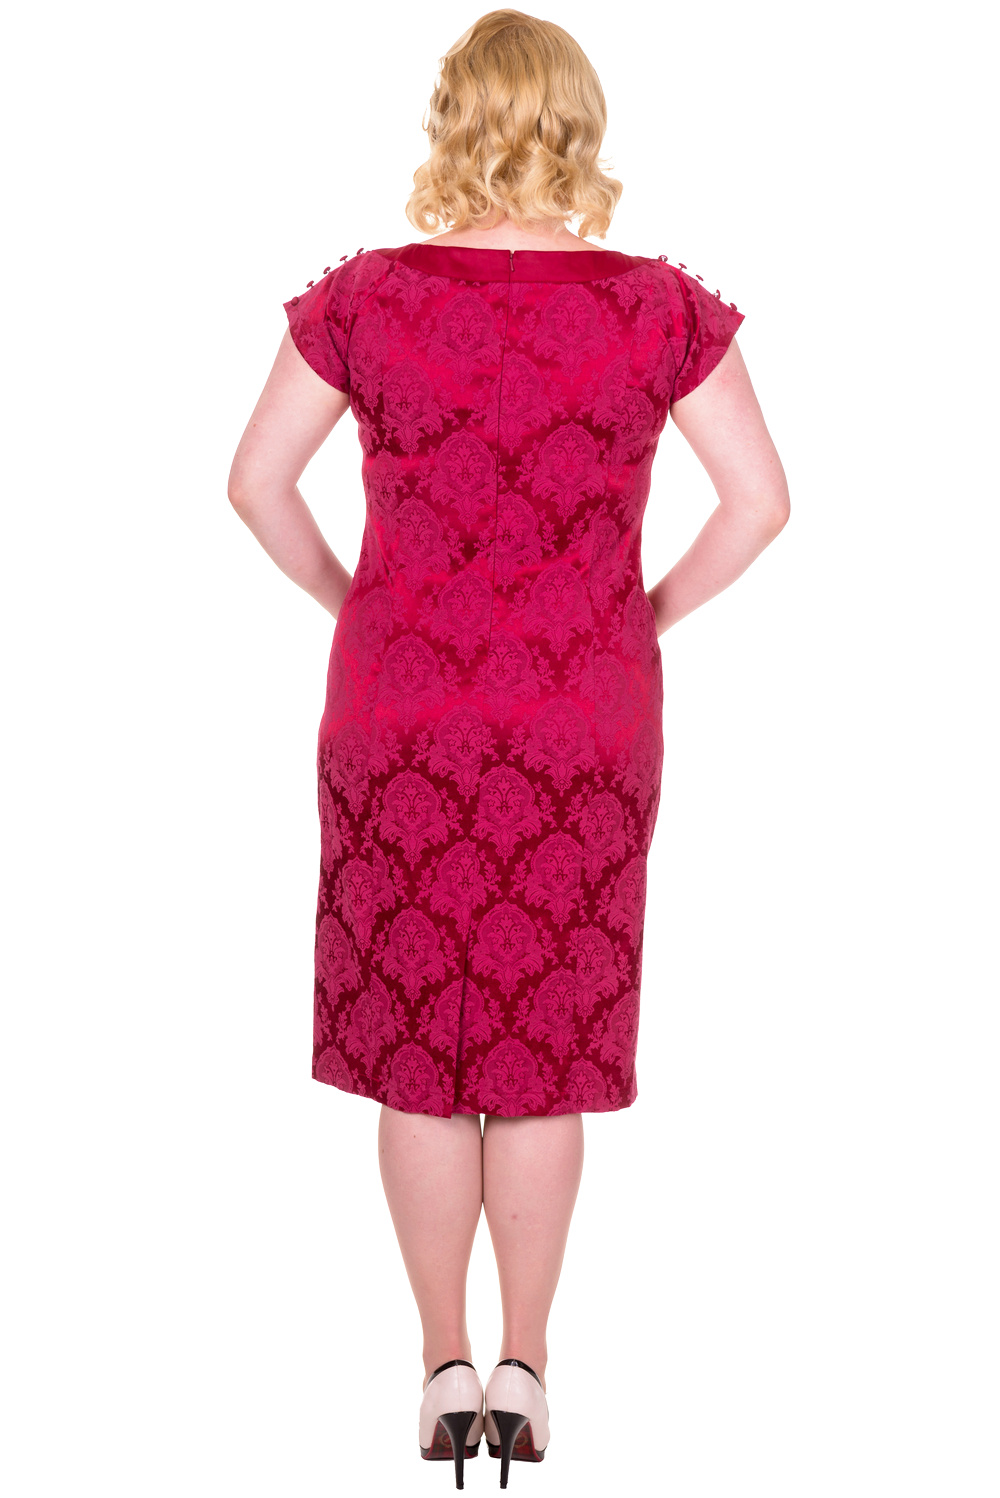 Banned Limitless Burgundy 1940s Dress Plus Size